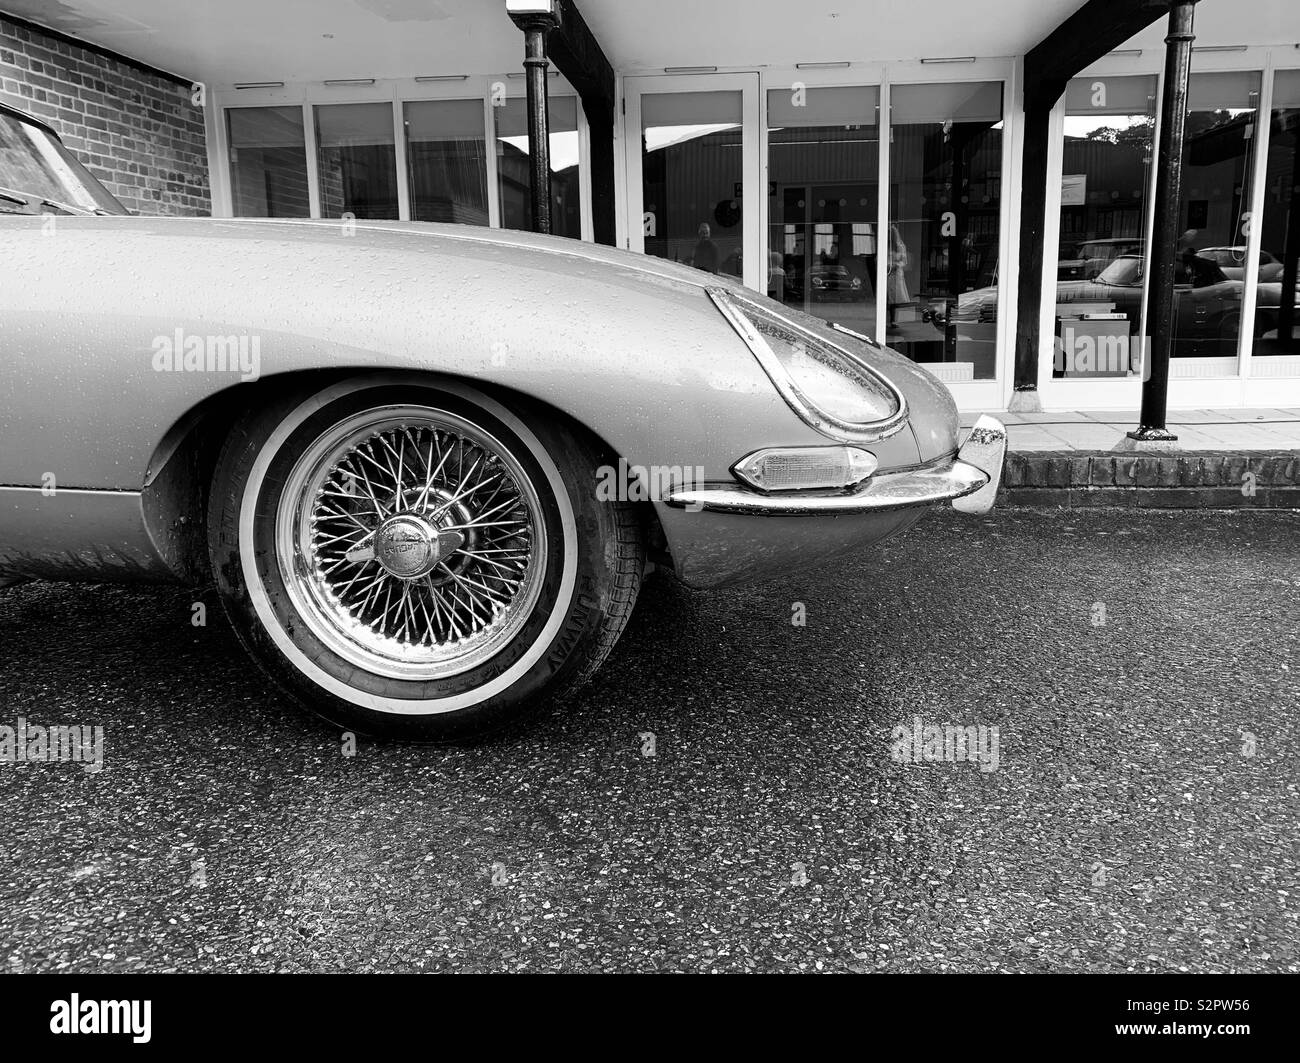 Classic sports car with wire wheels in ack and white - Stock Image